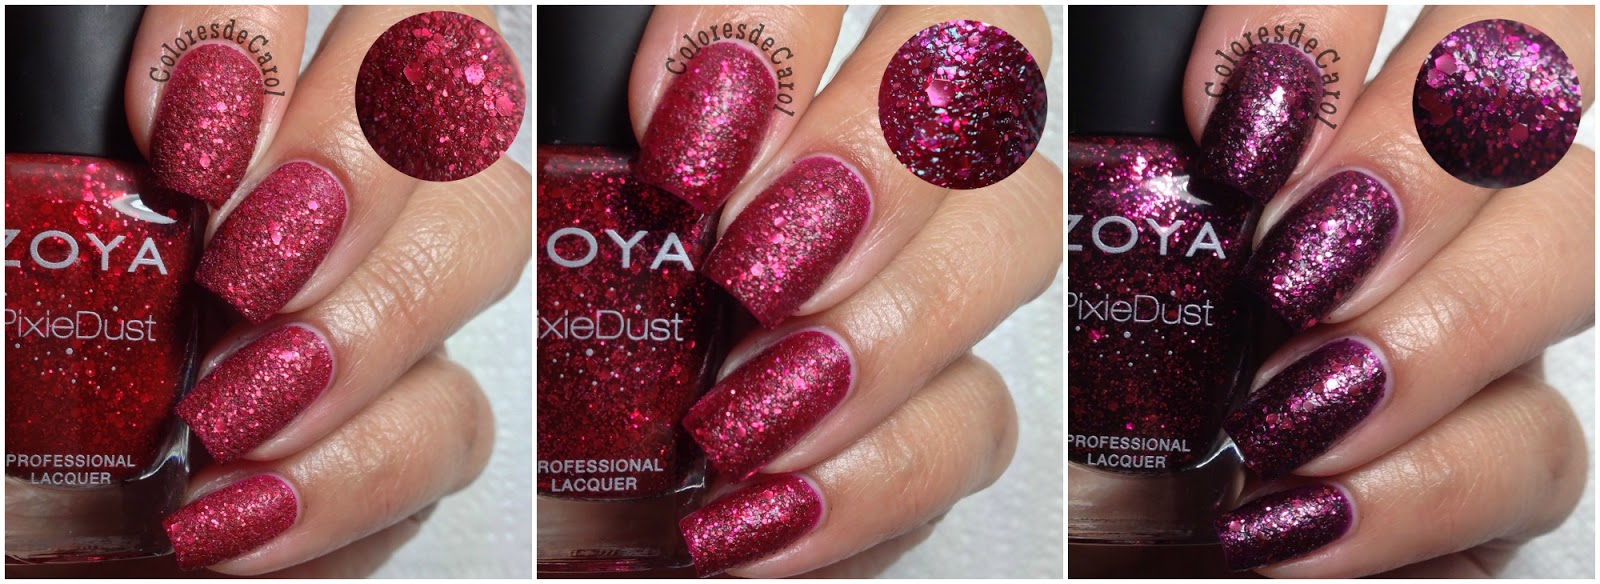 Zoya Nail Polish Pixie Dust Canada